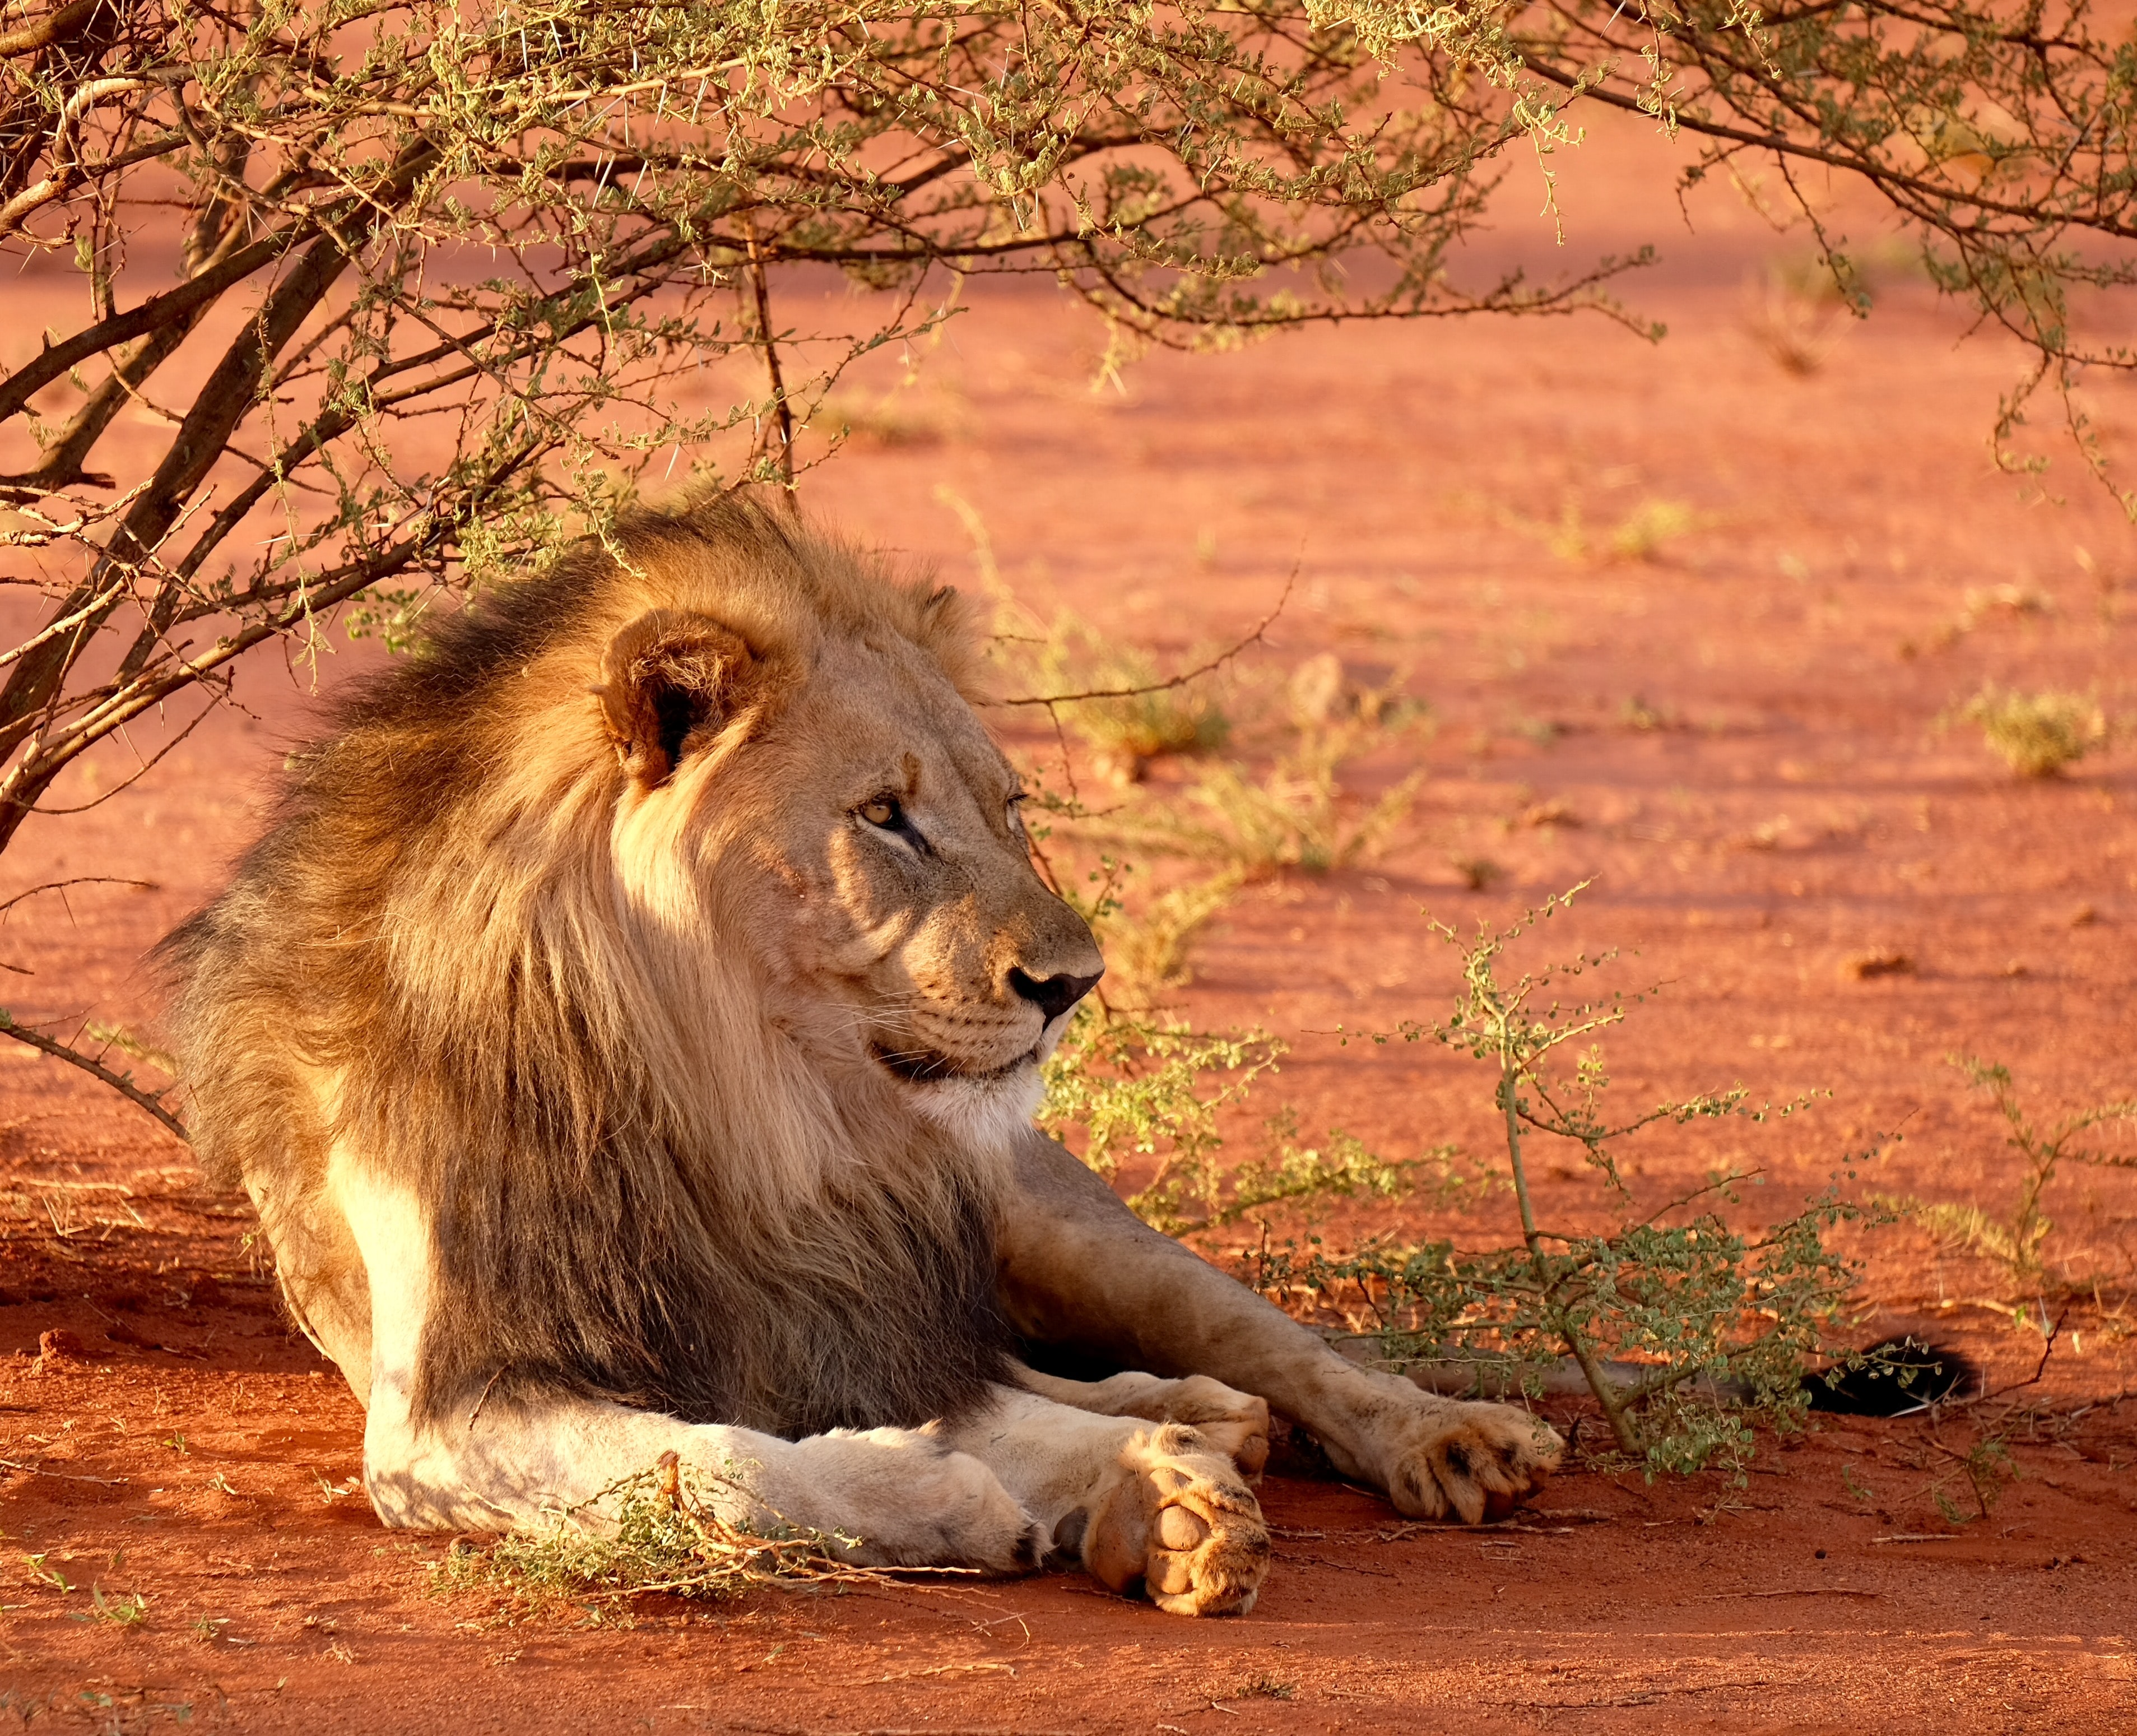 lion leaning near tree during daytime